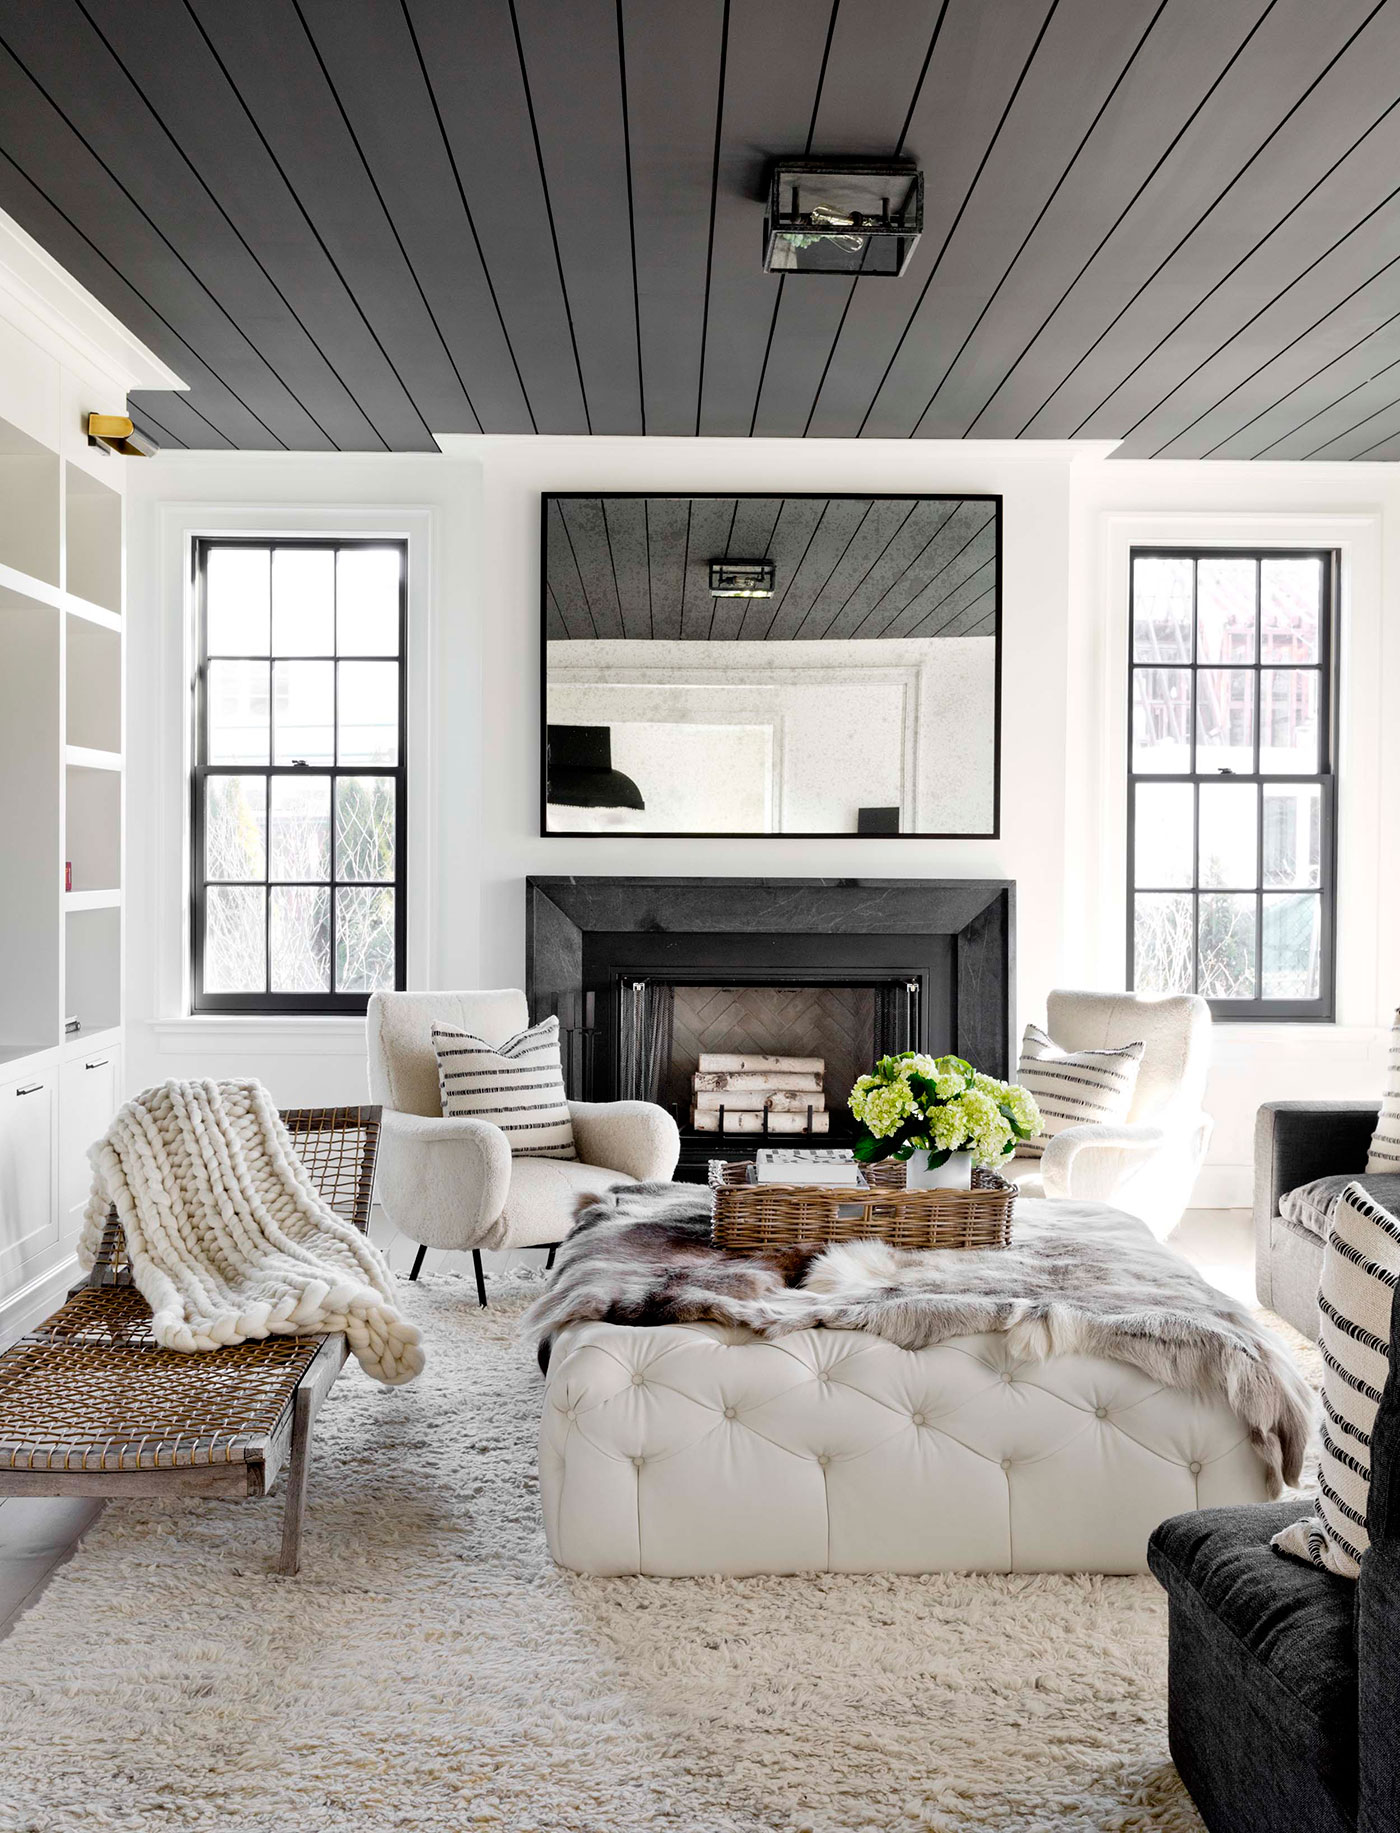 Painted ceiling in dark grey